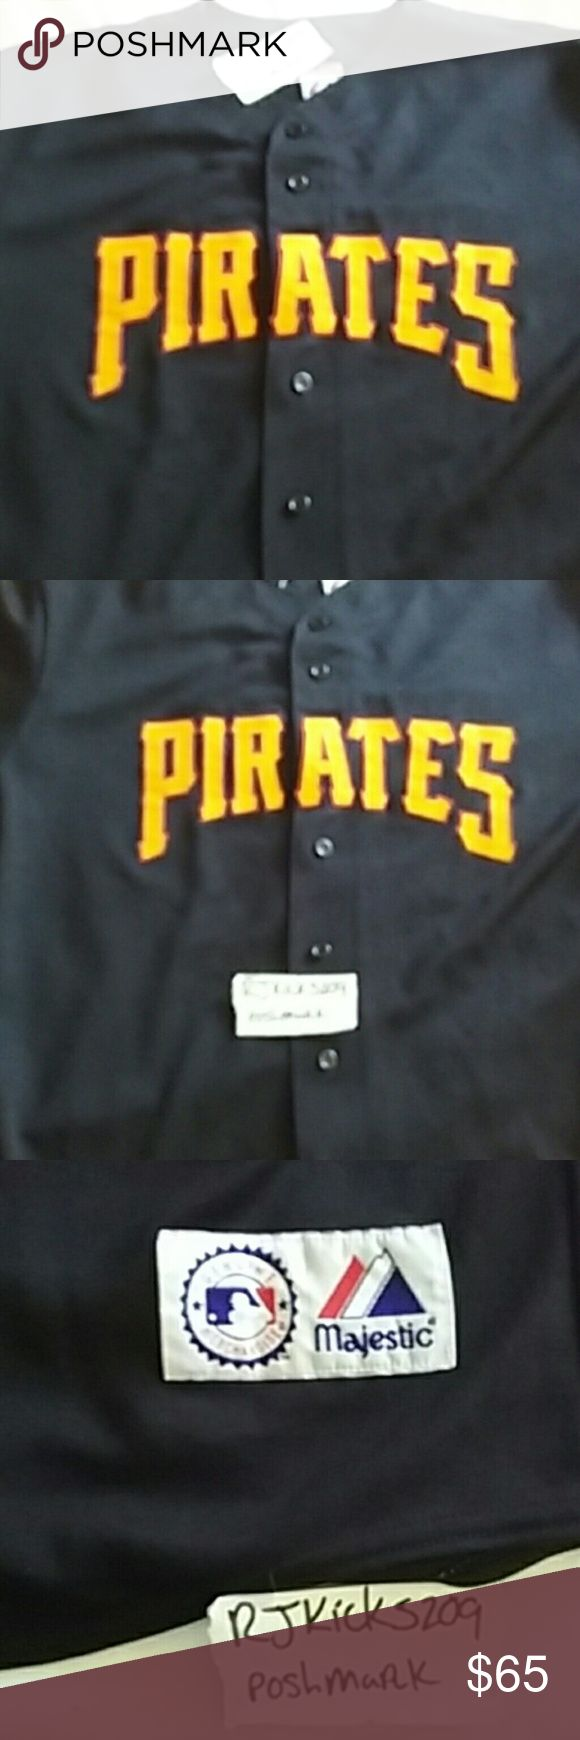 Pittsburg pirates mlb jersey Classic pittsburg pirates jersey #52. 9/10 condition   Please be Purchase ready, address confirmed and account verified (otherwise will result in cancelled order)  If you message or place an offer me it's because you're ready to purchase immediately. If that's not you intentions please refrain from doing so (you will get blocked)  All details of the item are listed.  No lowballs, low offers or unrealistic offers,no trades! Thanks Majestic Other